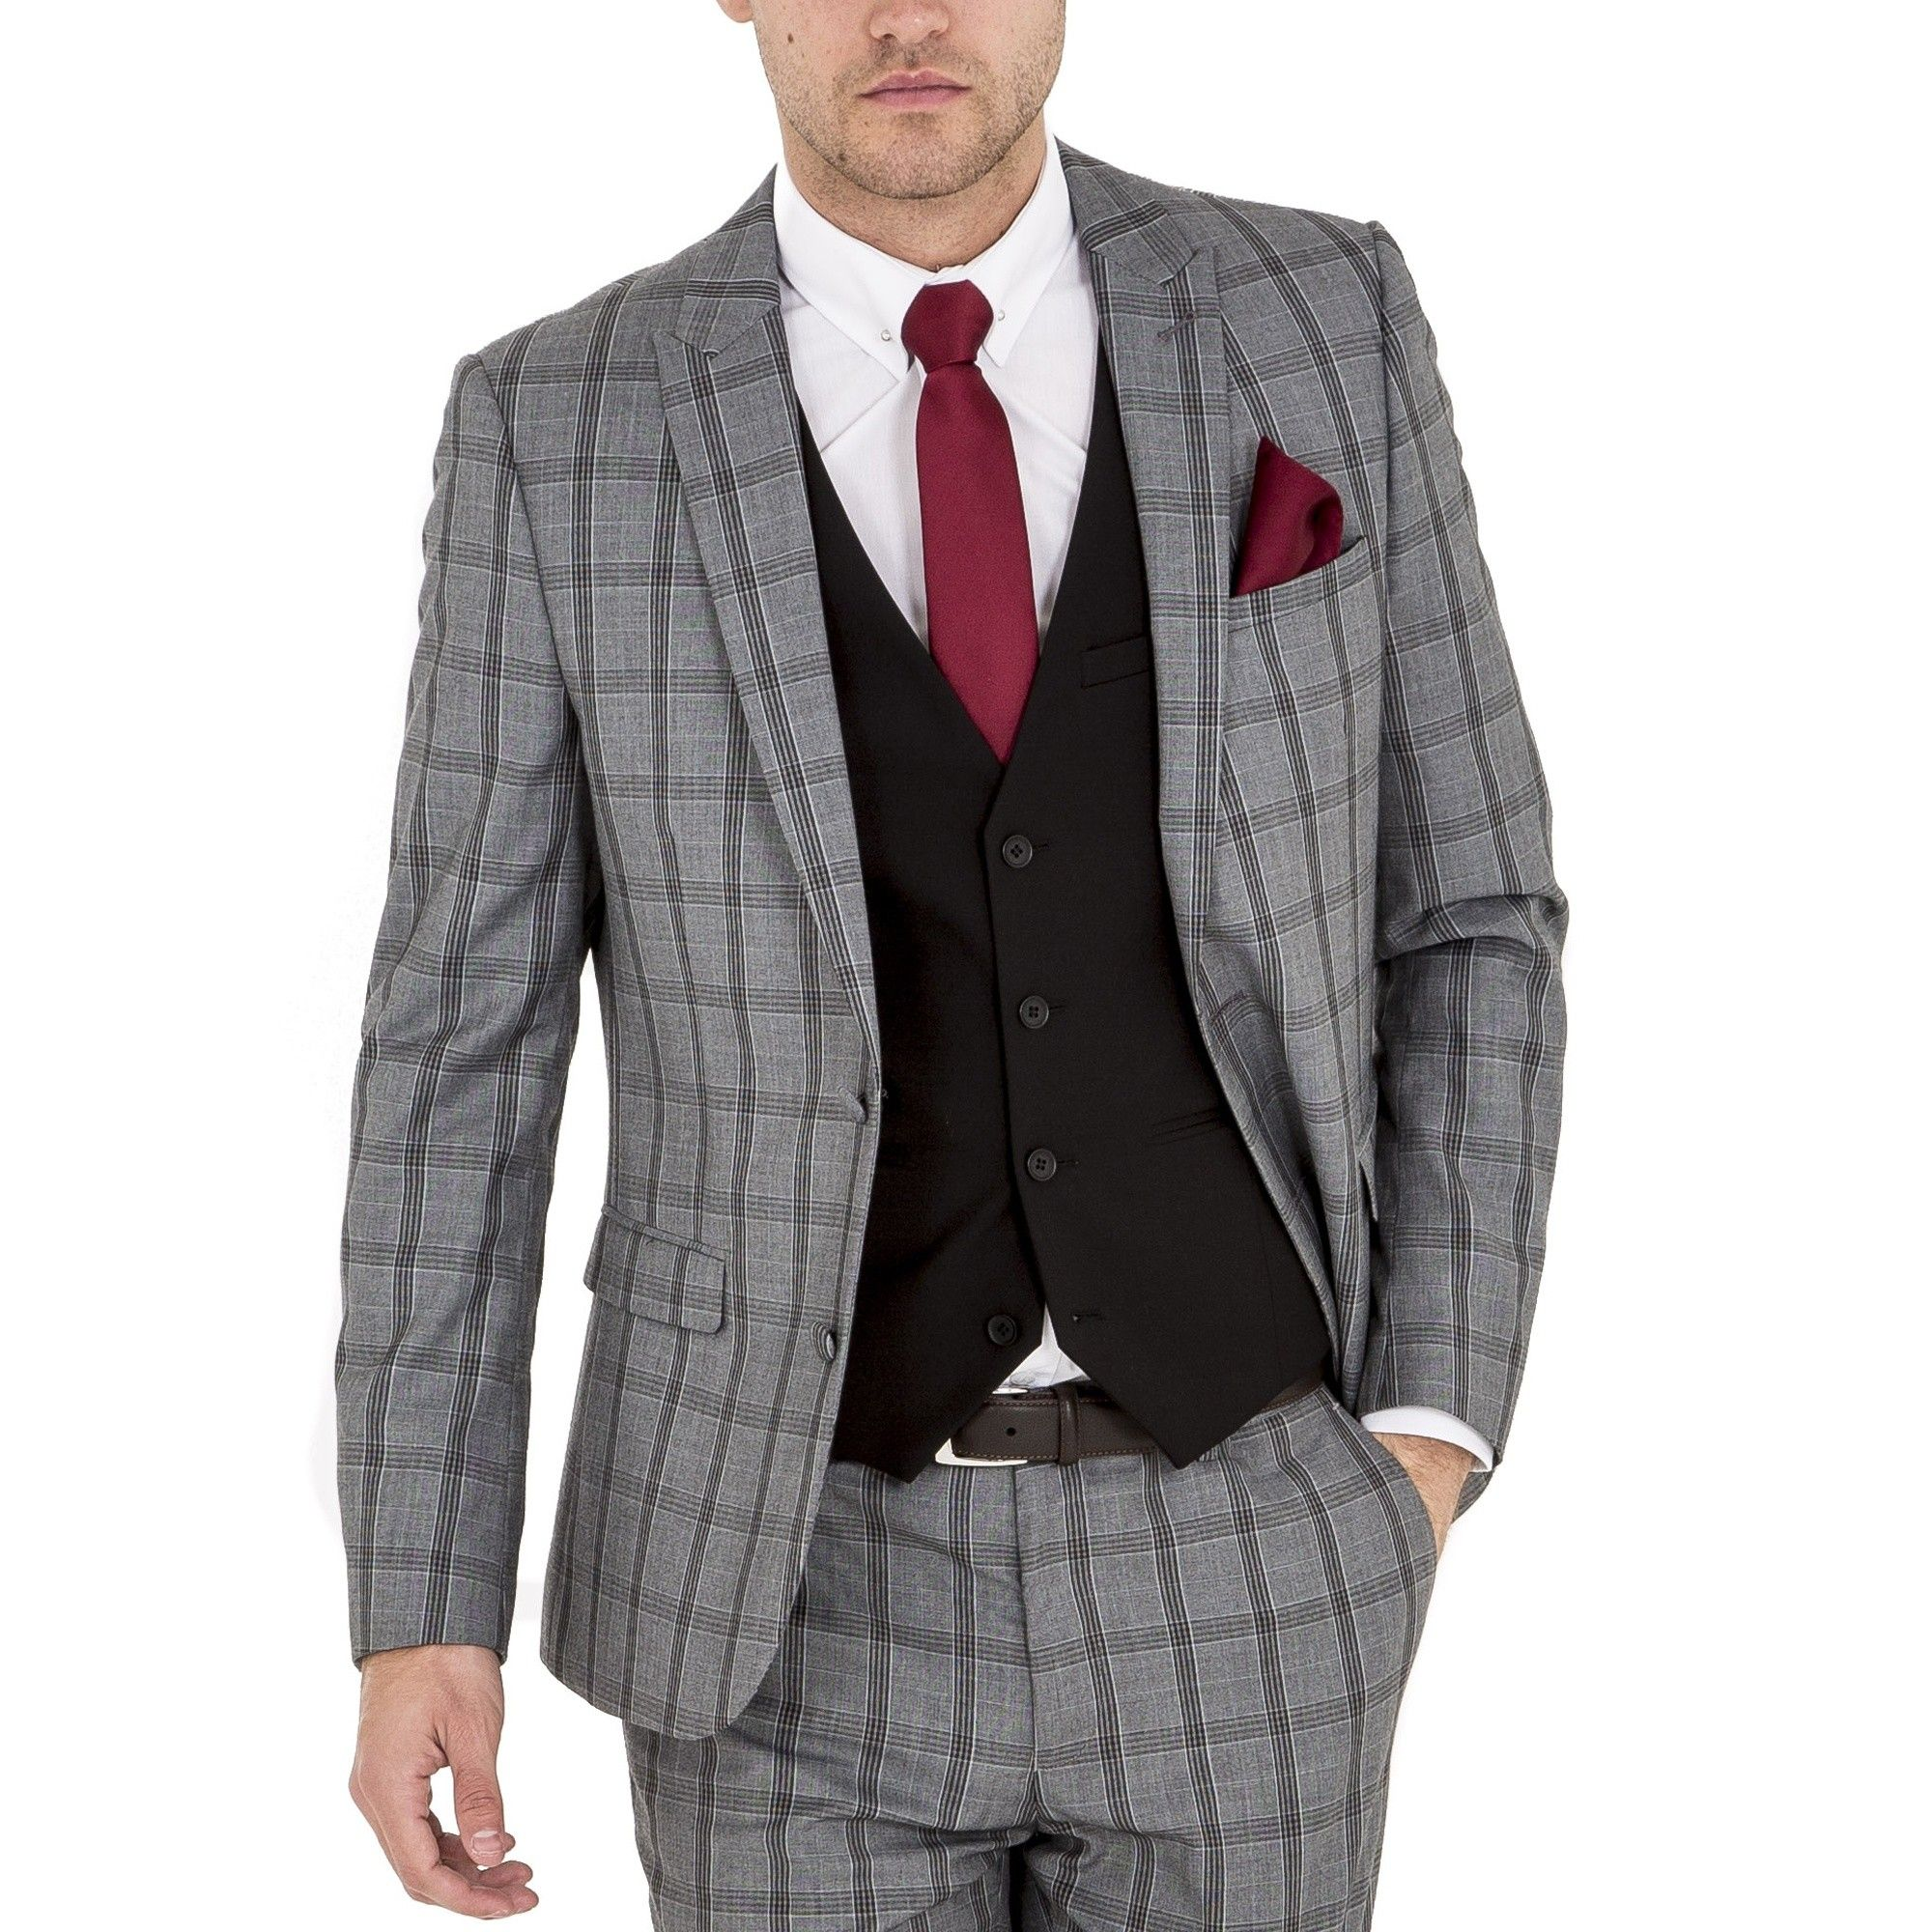 HARRY BROWN Skinny Fit Grey Check Three Piece Suit - Three ...